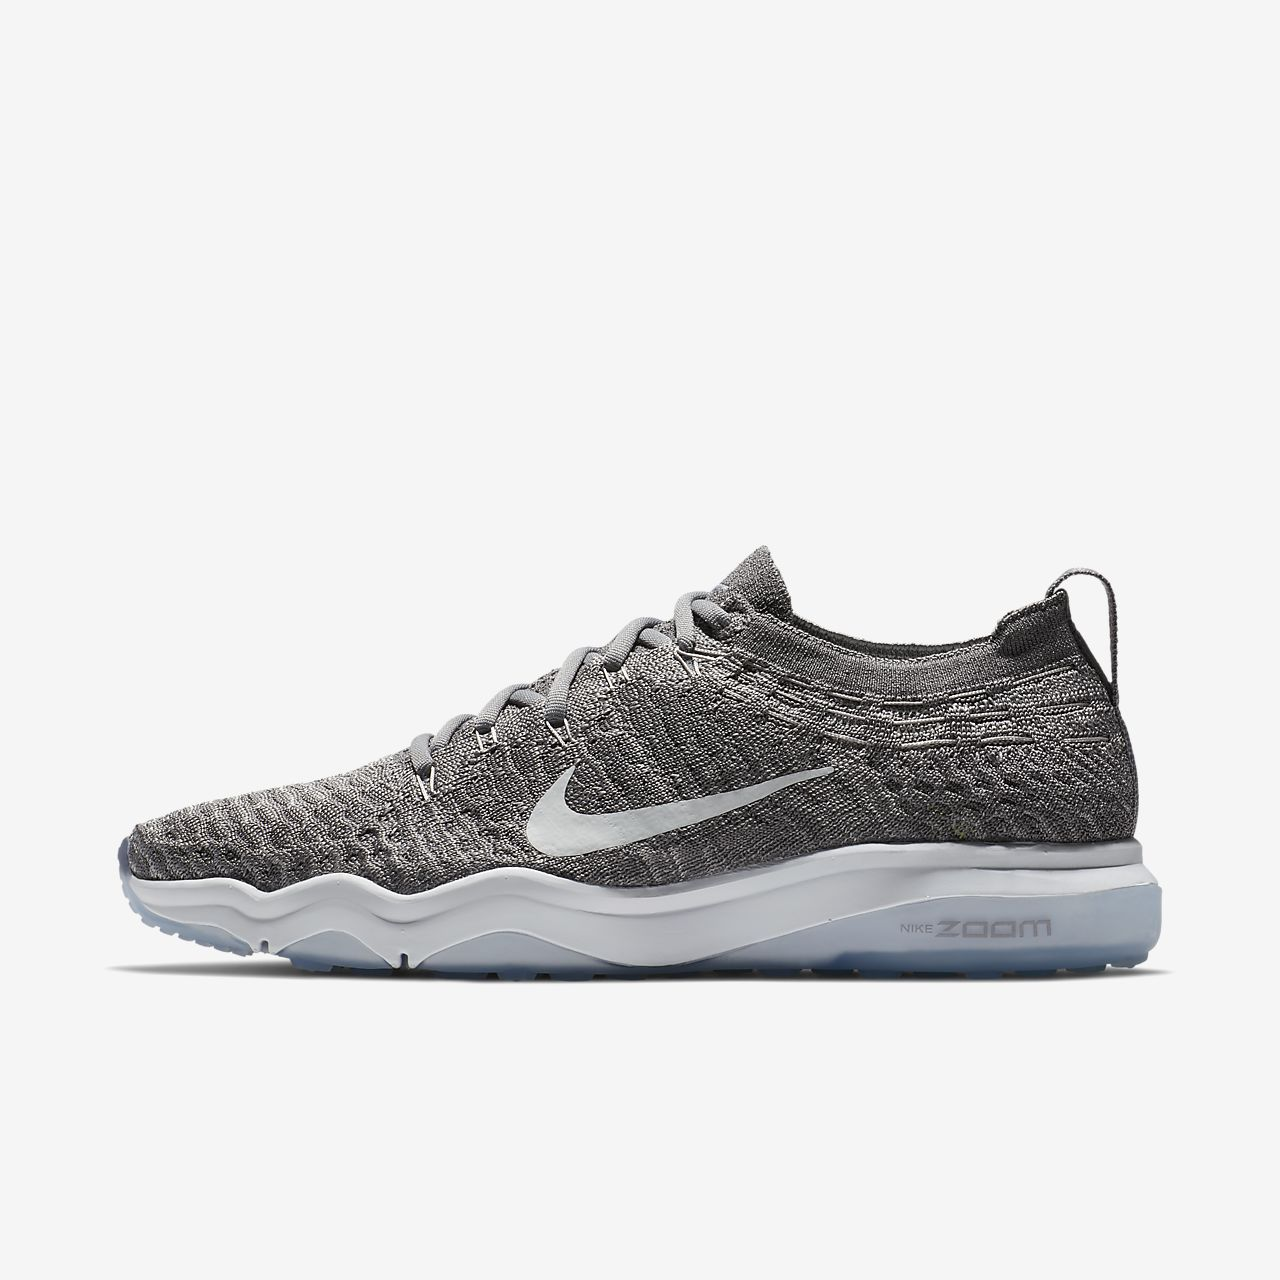 ... Chaussure de training Nike Air Zoom Fearless Flyknit Lux pour Femme